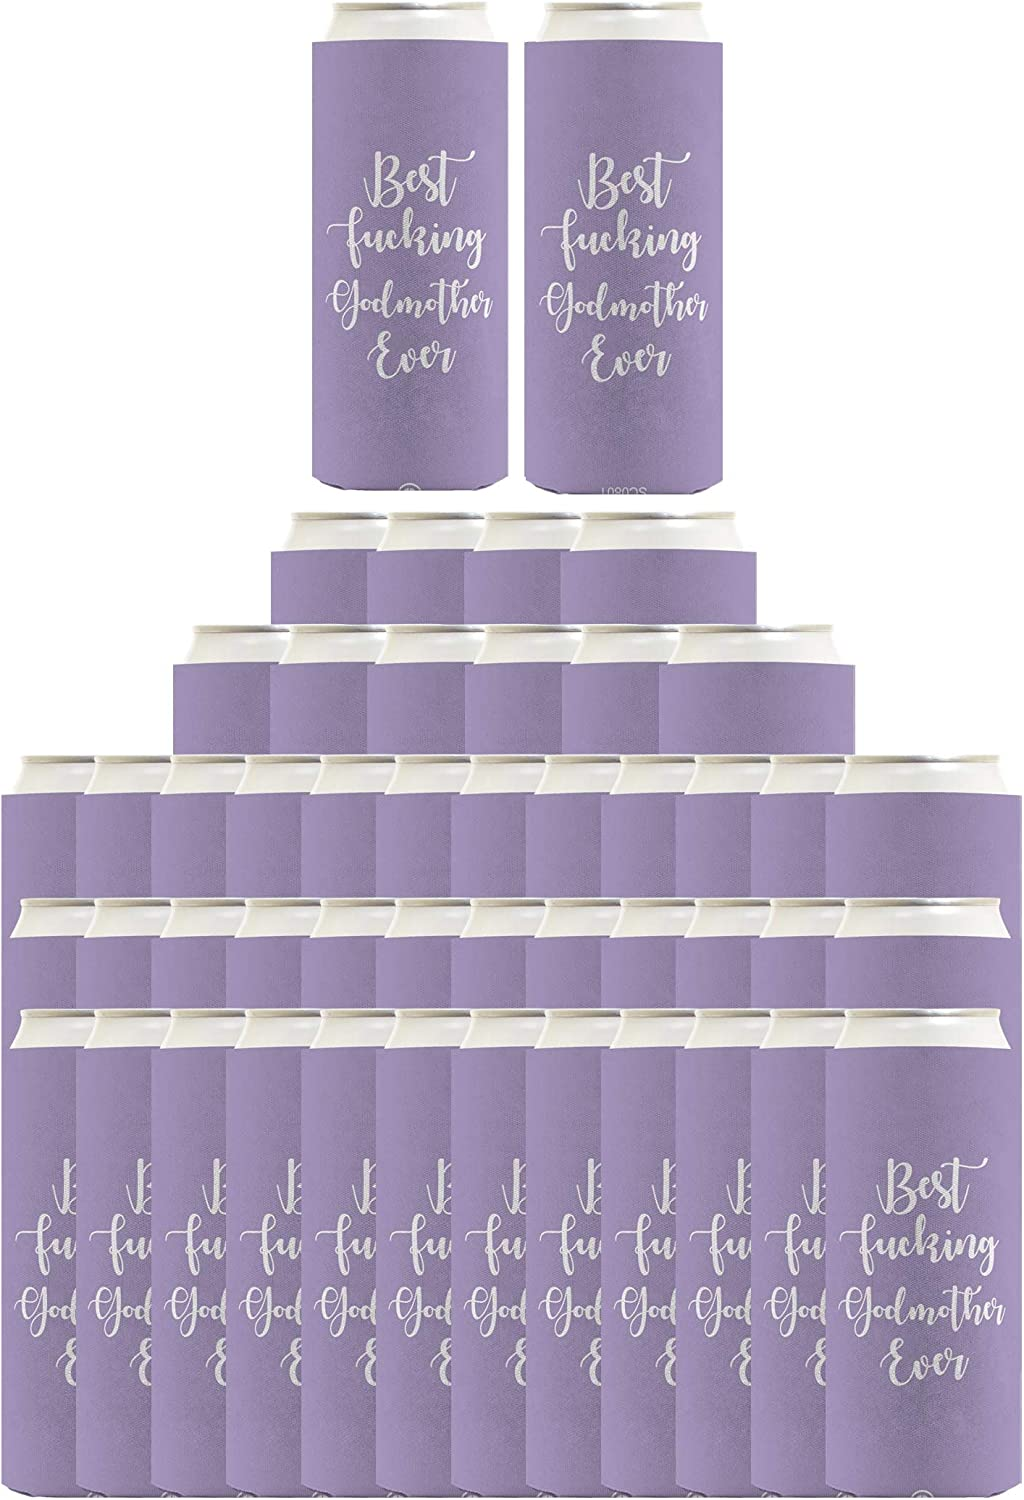 Best Godmother Ever Quantity limited Gifts F-cking 48-Pac Max 69% OFF The